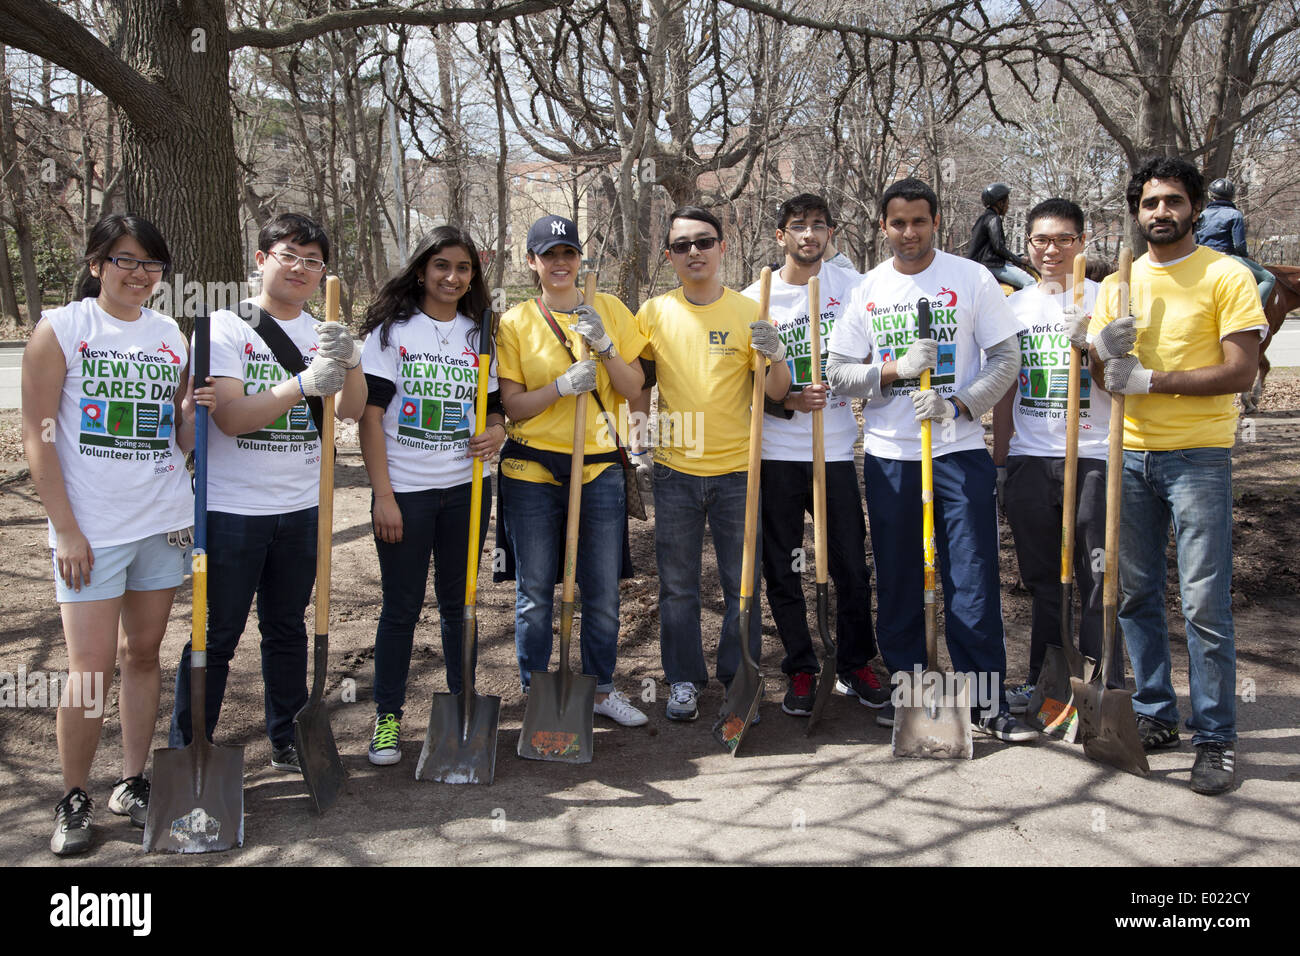 NYU Students & employees from Ernst & Young volunteer at park cleanup day hosted by New York Cares at Prospect Park, Brooklyn NY - Stock Image